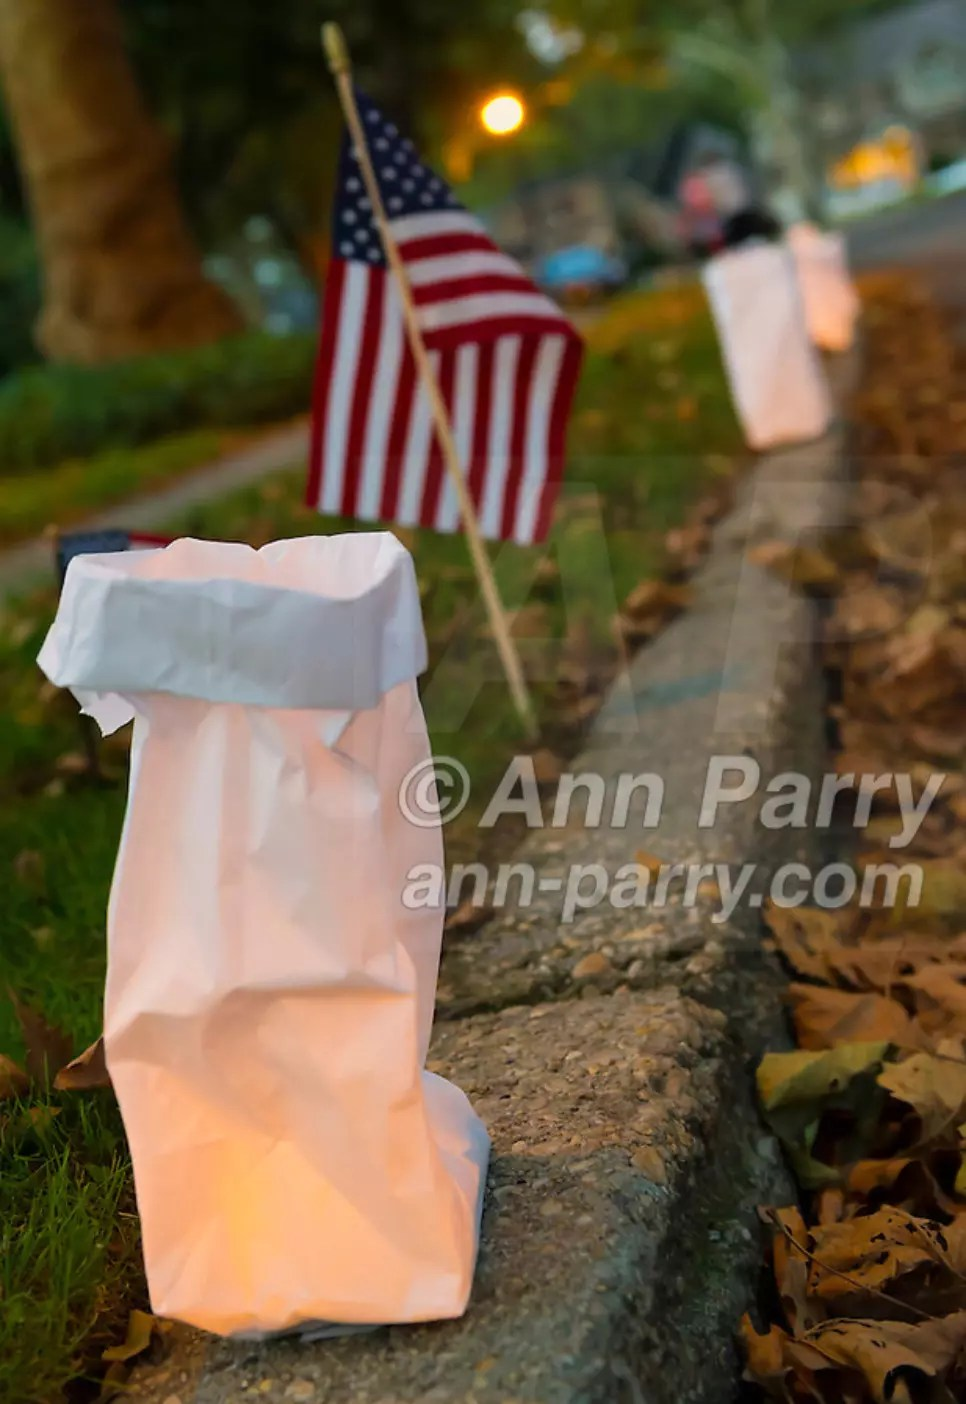 Merrick, NY, USA. Sept. 11, 2012. 500 Luminary Bags are distributed among the 215 Wenshaw Park homes on 11th Anniversary of 9/11, by Wenshaw Park Civic Association, with over $500 already raised for Twin Towers Orphan Fund. The tea candle in each bag will self-extinguish overnight, & volunteers will collect bags 9/12.